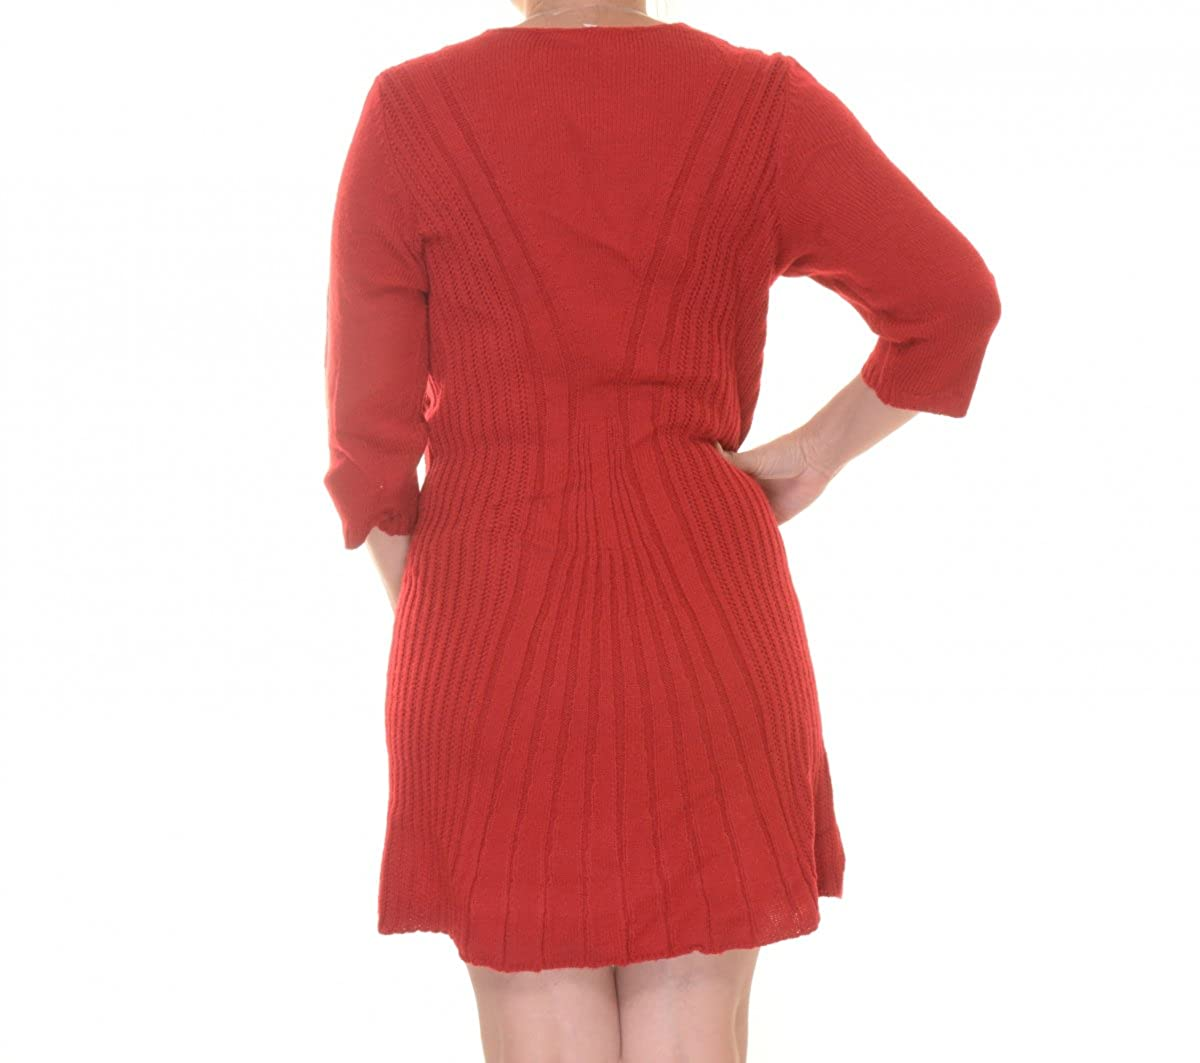 1d18c147531 Dresses NY Collection Petite Cable-Knit A-Line Sweater Dress Size PL  YSVD0304